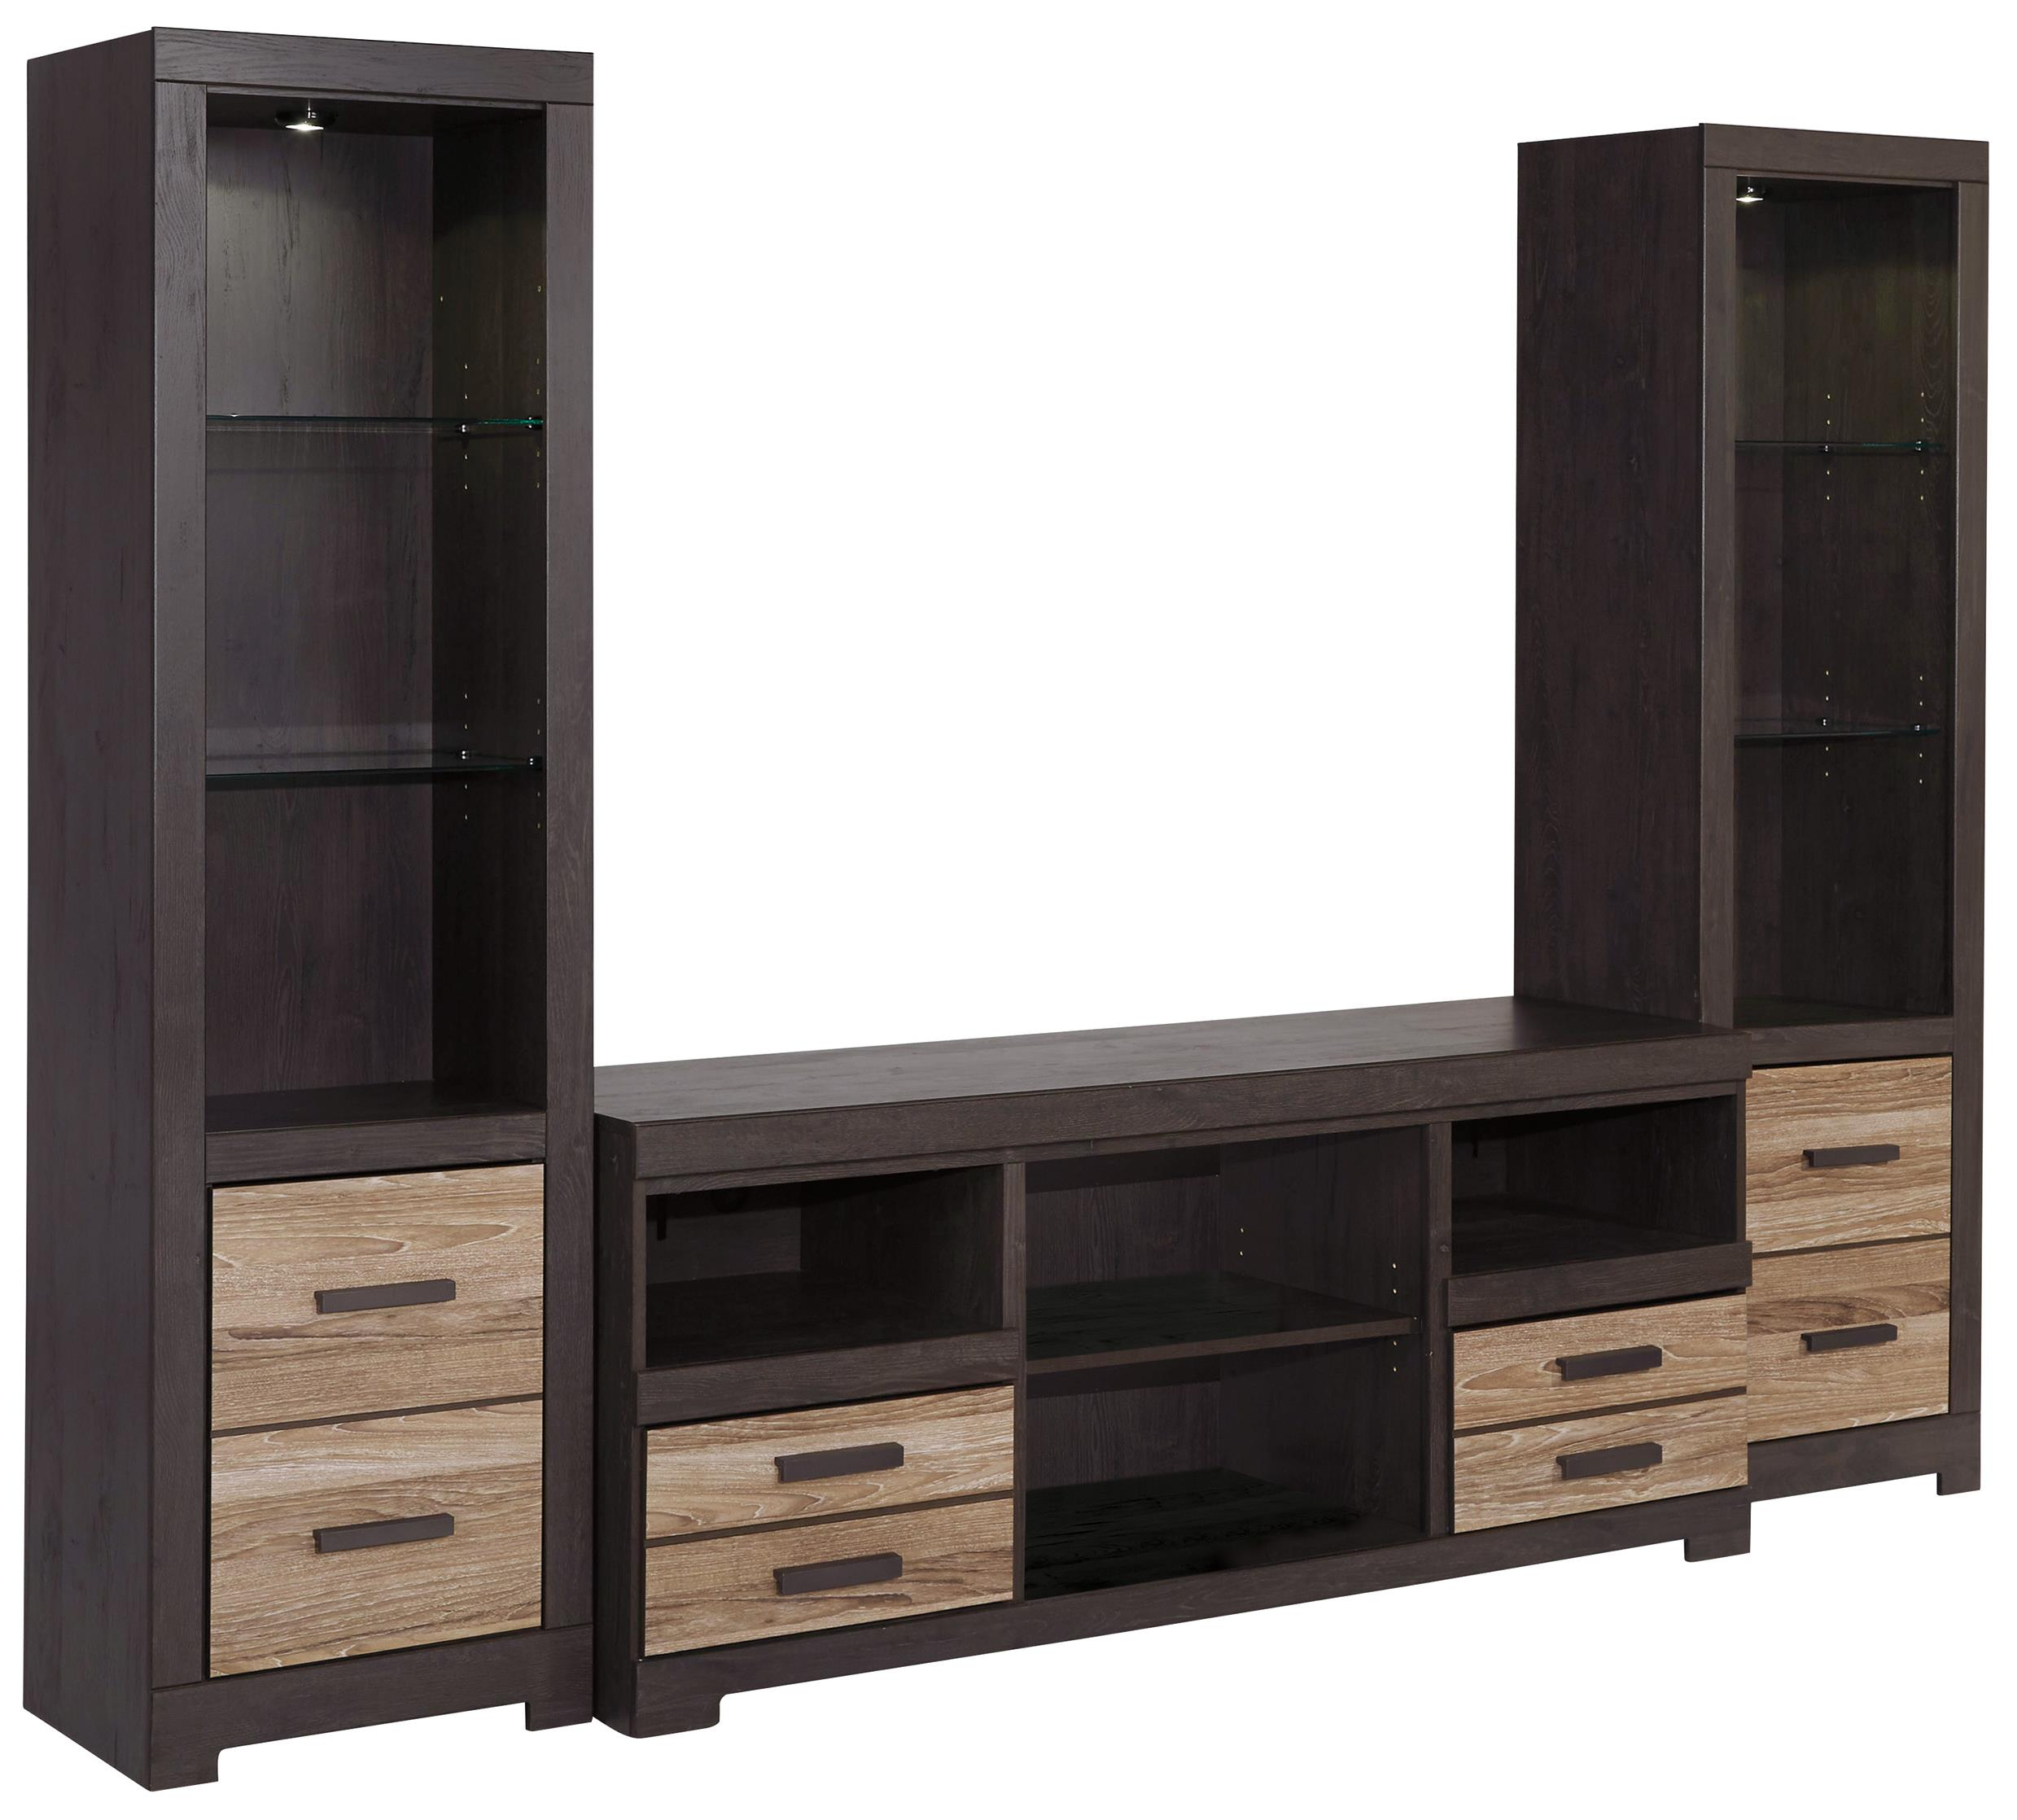 signature design by ashley harlinton large tv stand 2 tall piers rotmans wall unit. Black Bedroom Furniture Sets. Home Design Ideas